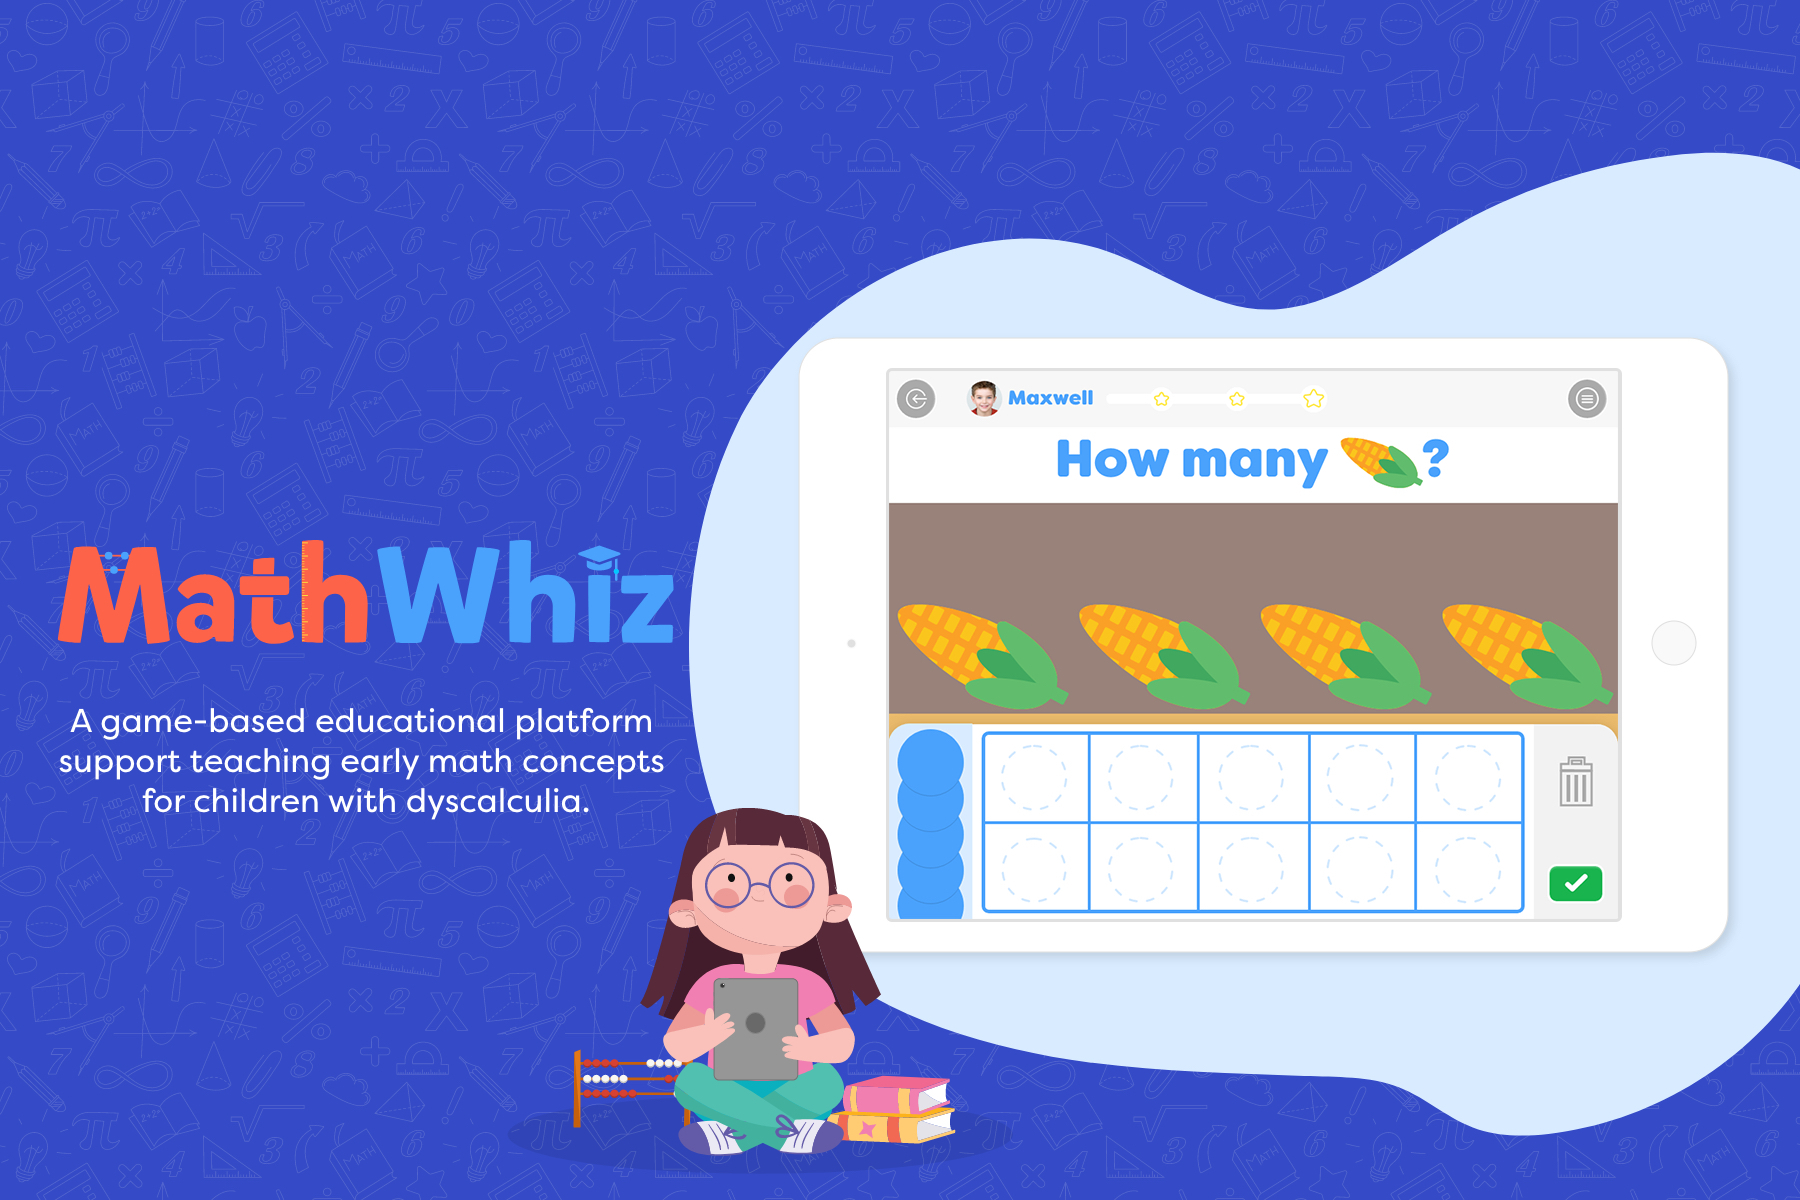 MathWhiz A game-based educational platform that supports teaching early math concepts for children with dyscalculia.